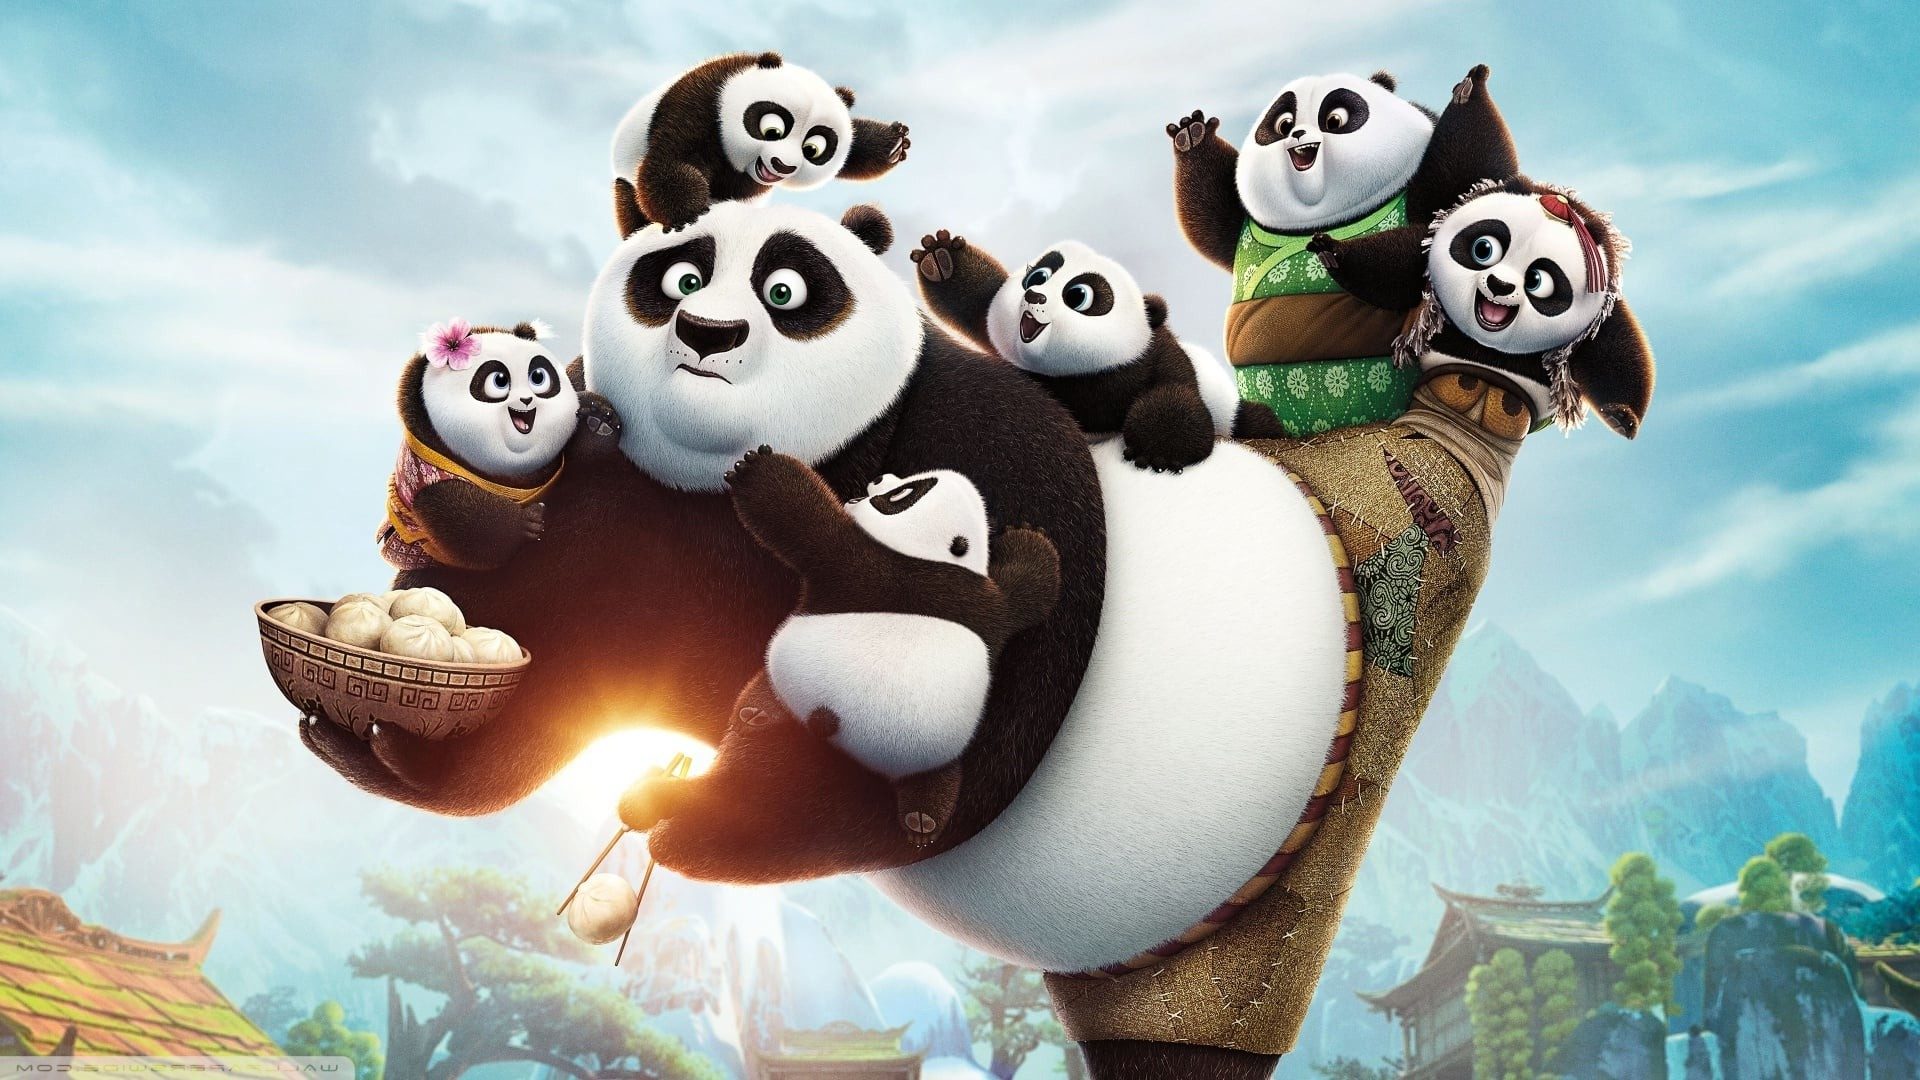 Kung Fu Panda 3 Wallpapers Wallpapertag